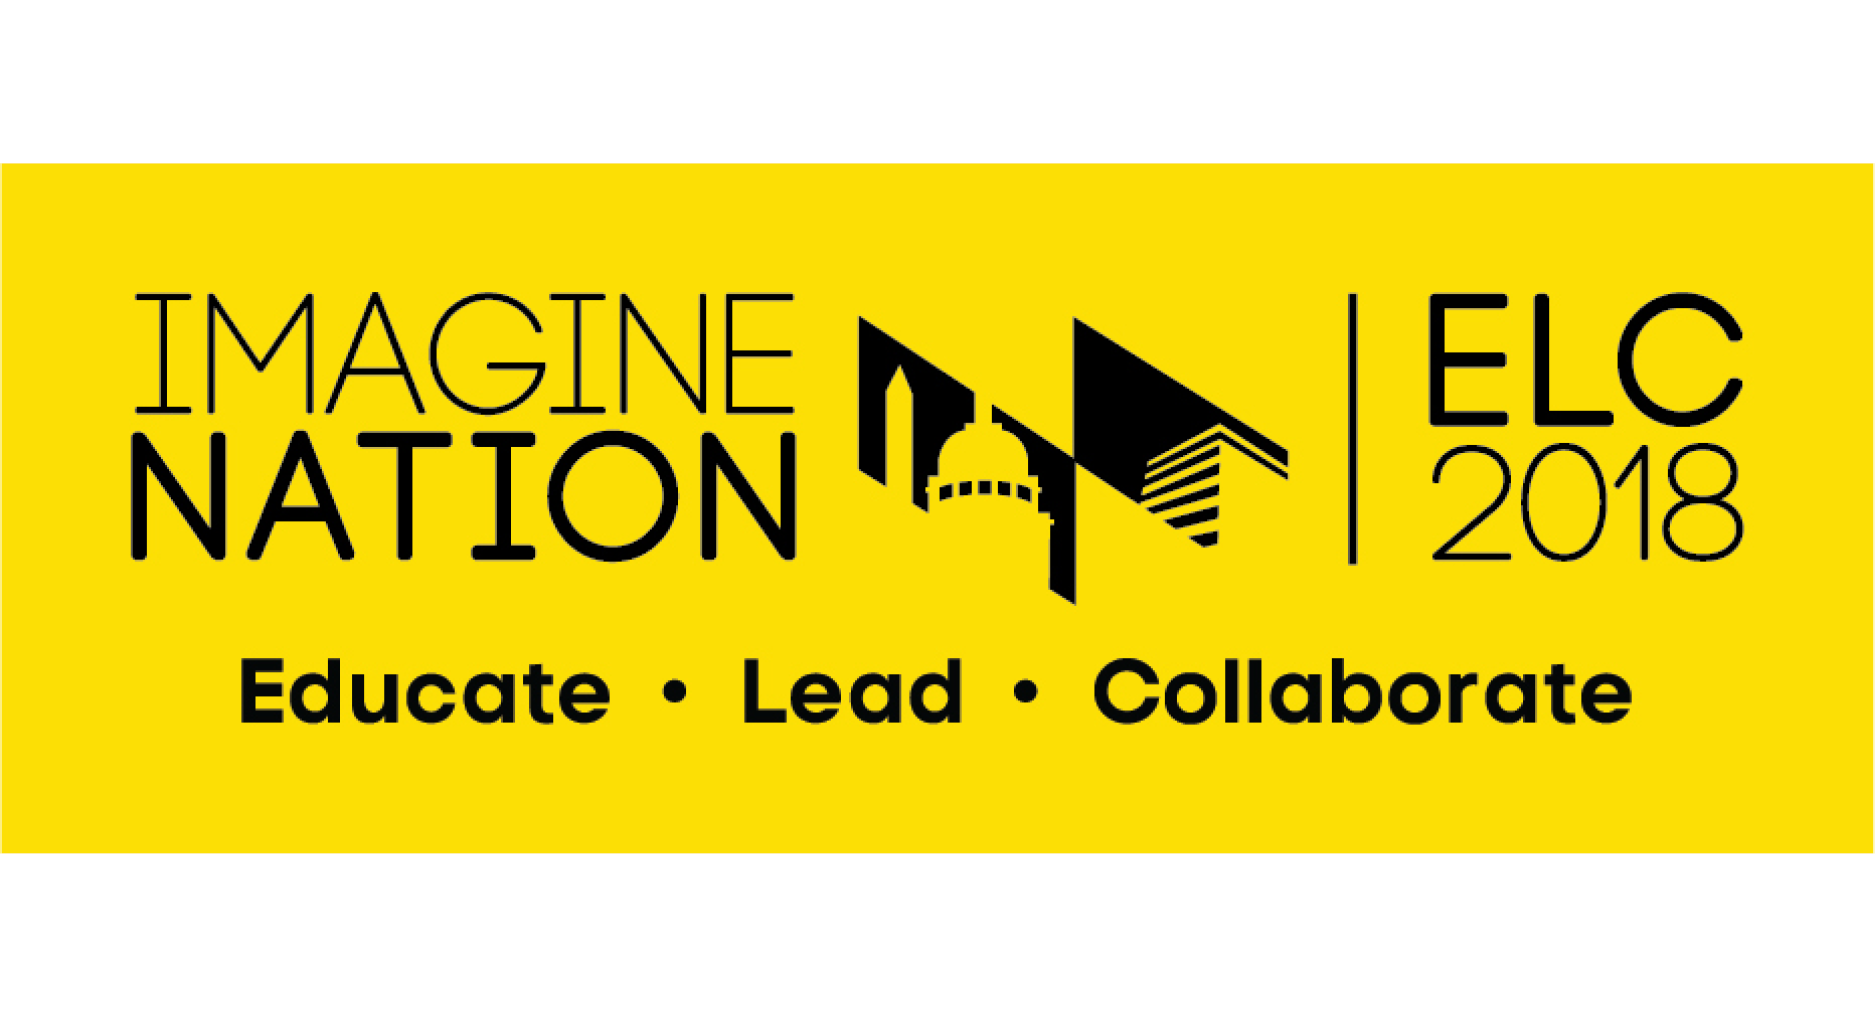 IMAGINE NATION – ELC 2018